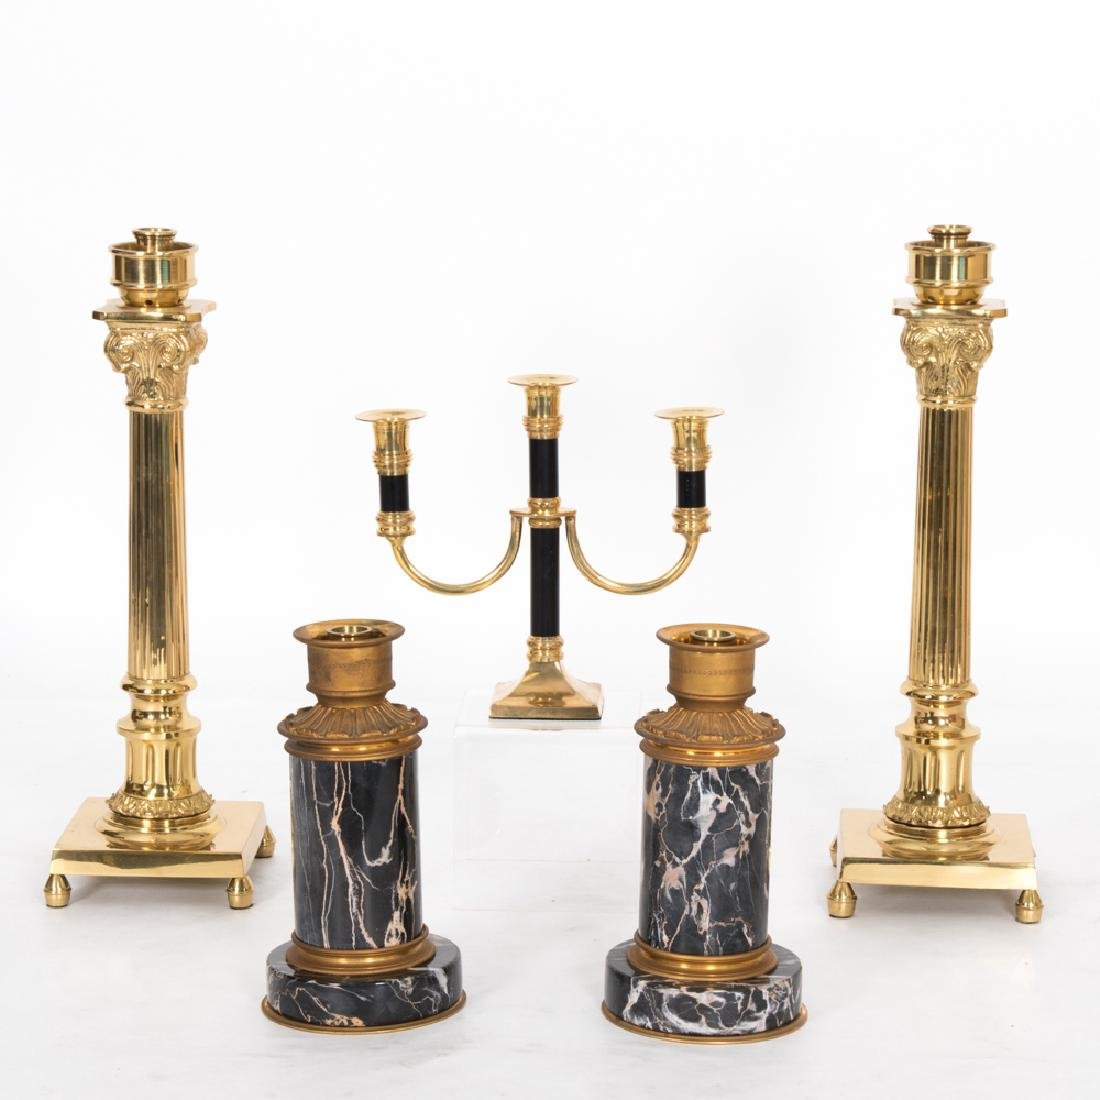 A Collection of Brass Candlesticks and Candelabra, 20th